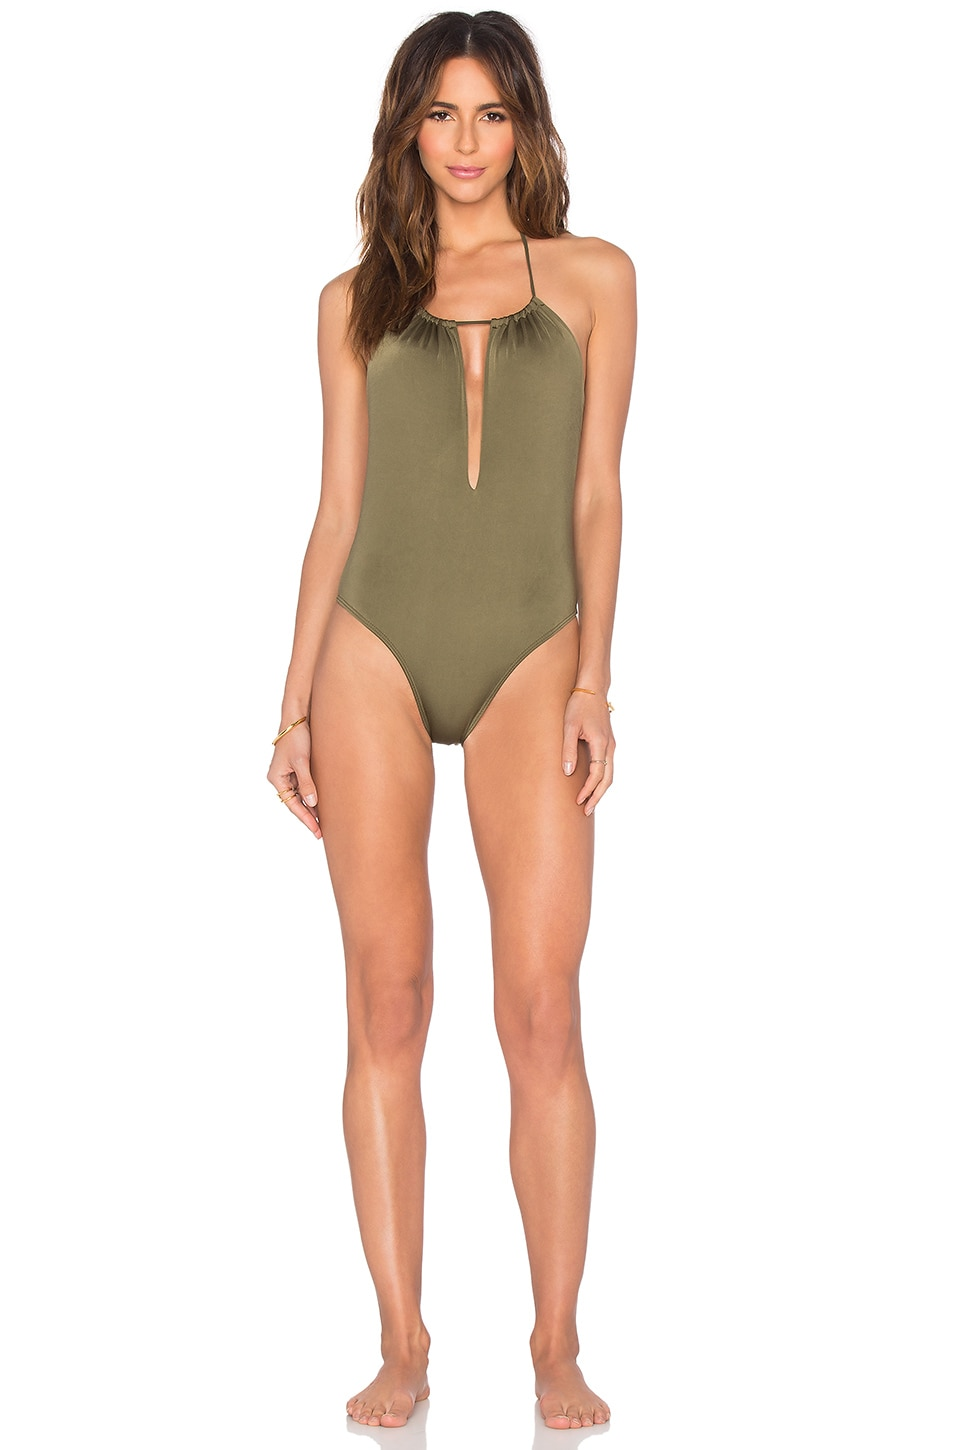 Surry Swimsuit